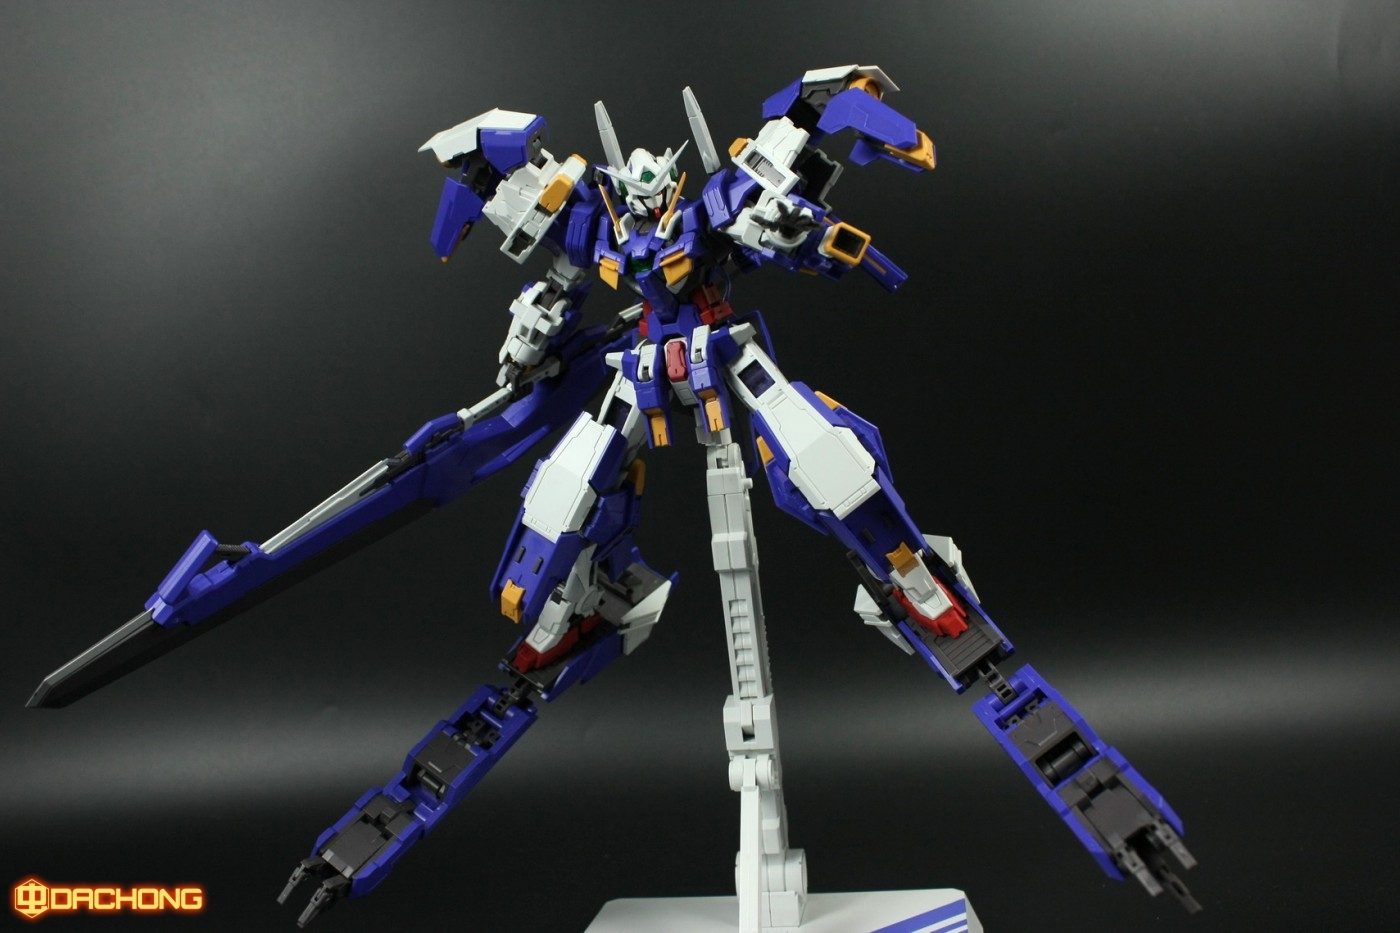 S254_MG_exia_HS_review_inask_106.jpg